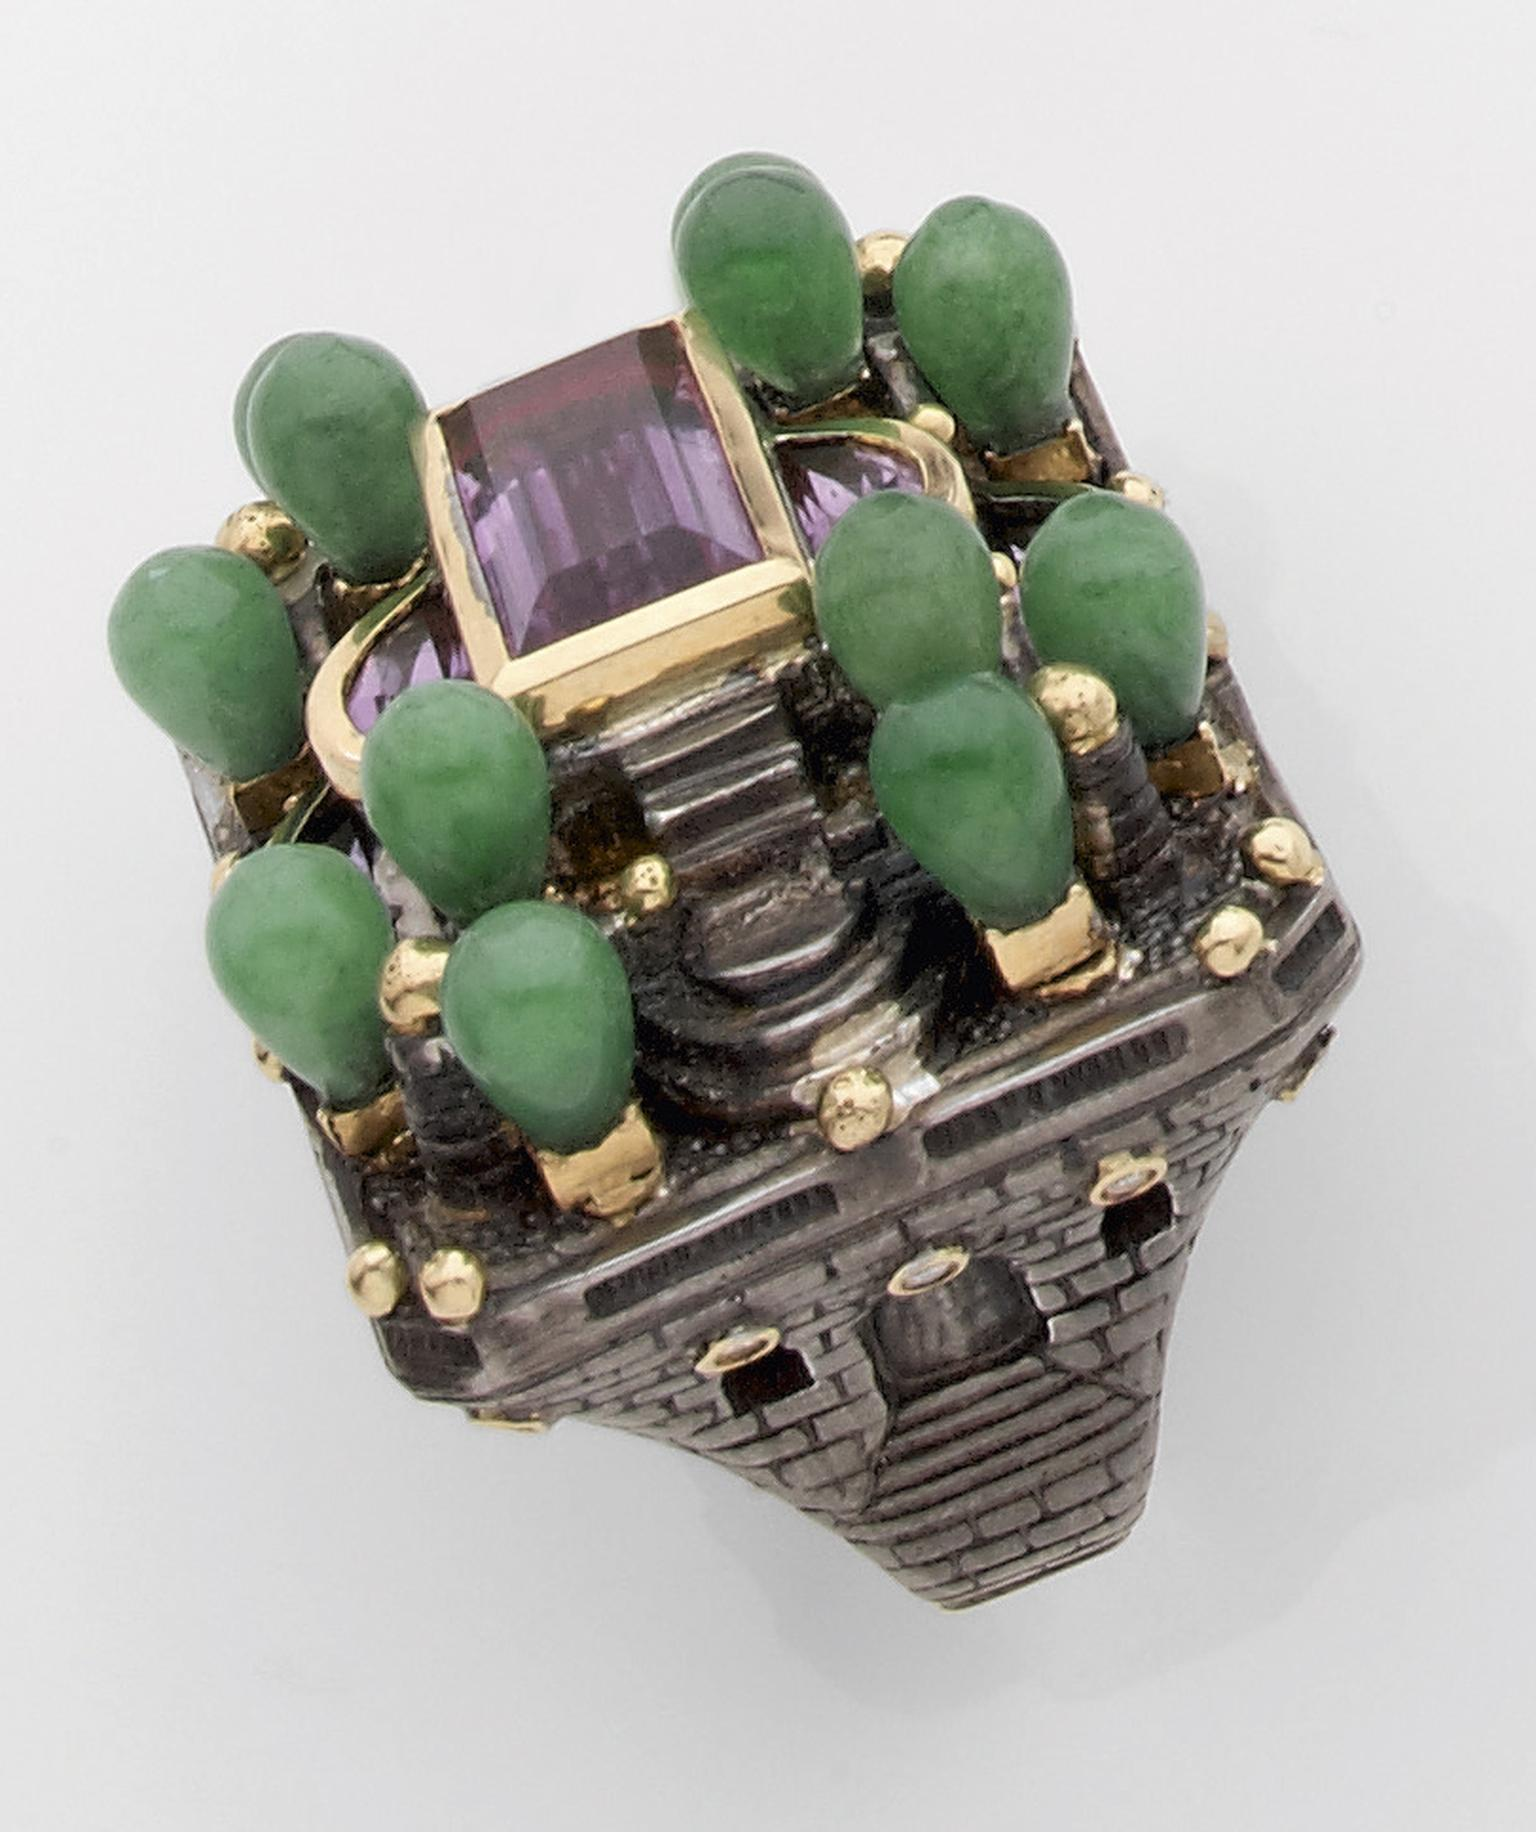 Jean Boggio Le Verger des Délices ring in yellow gold and silver with amethyst, jade and diamonds.